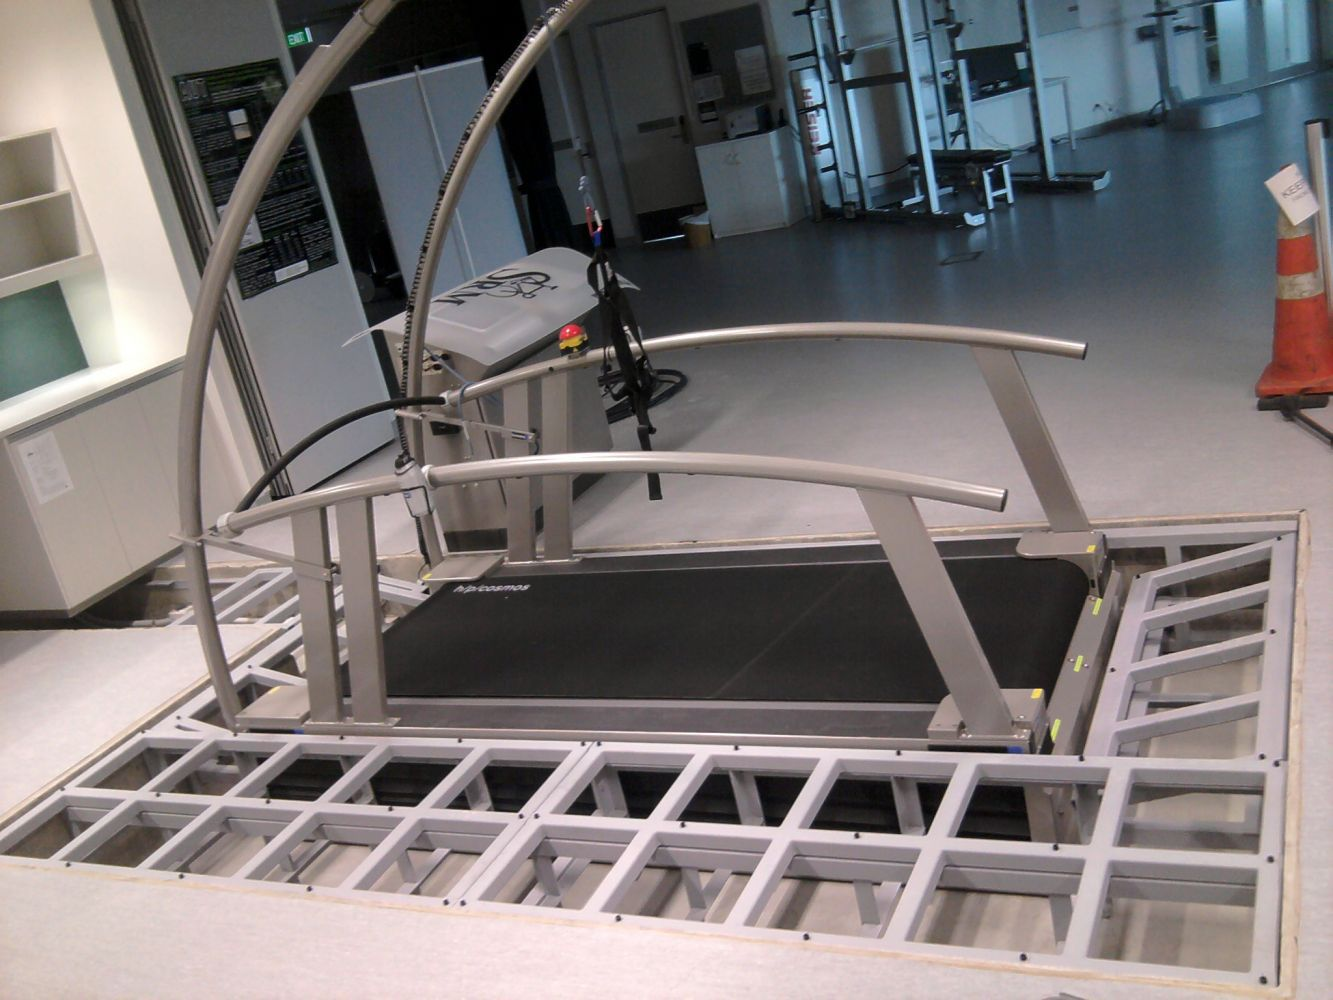 Steel frame surrounding a treadmill